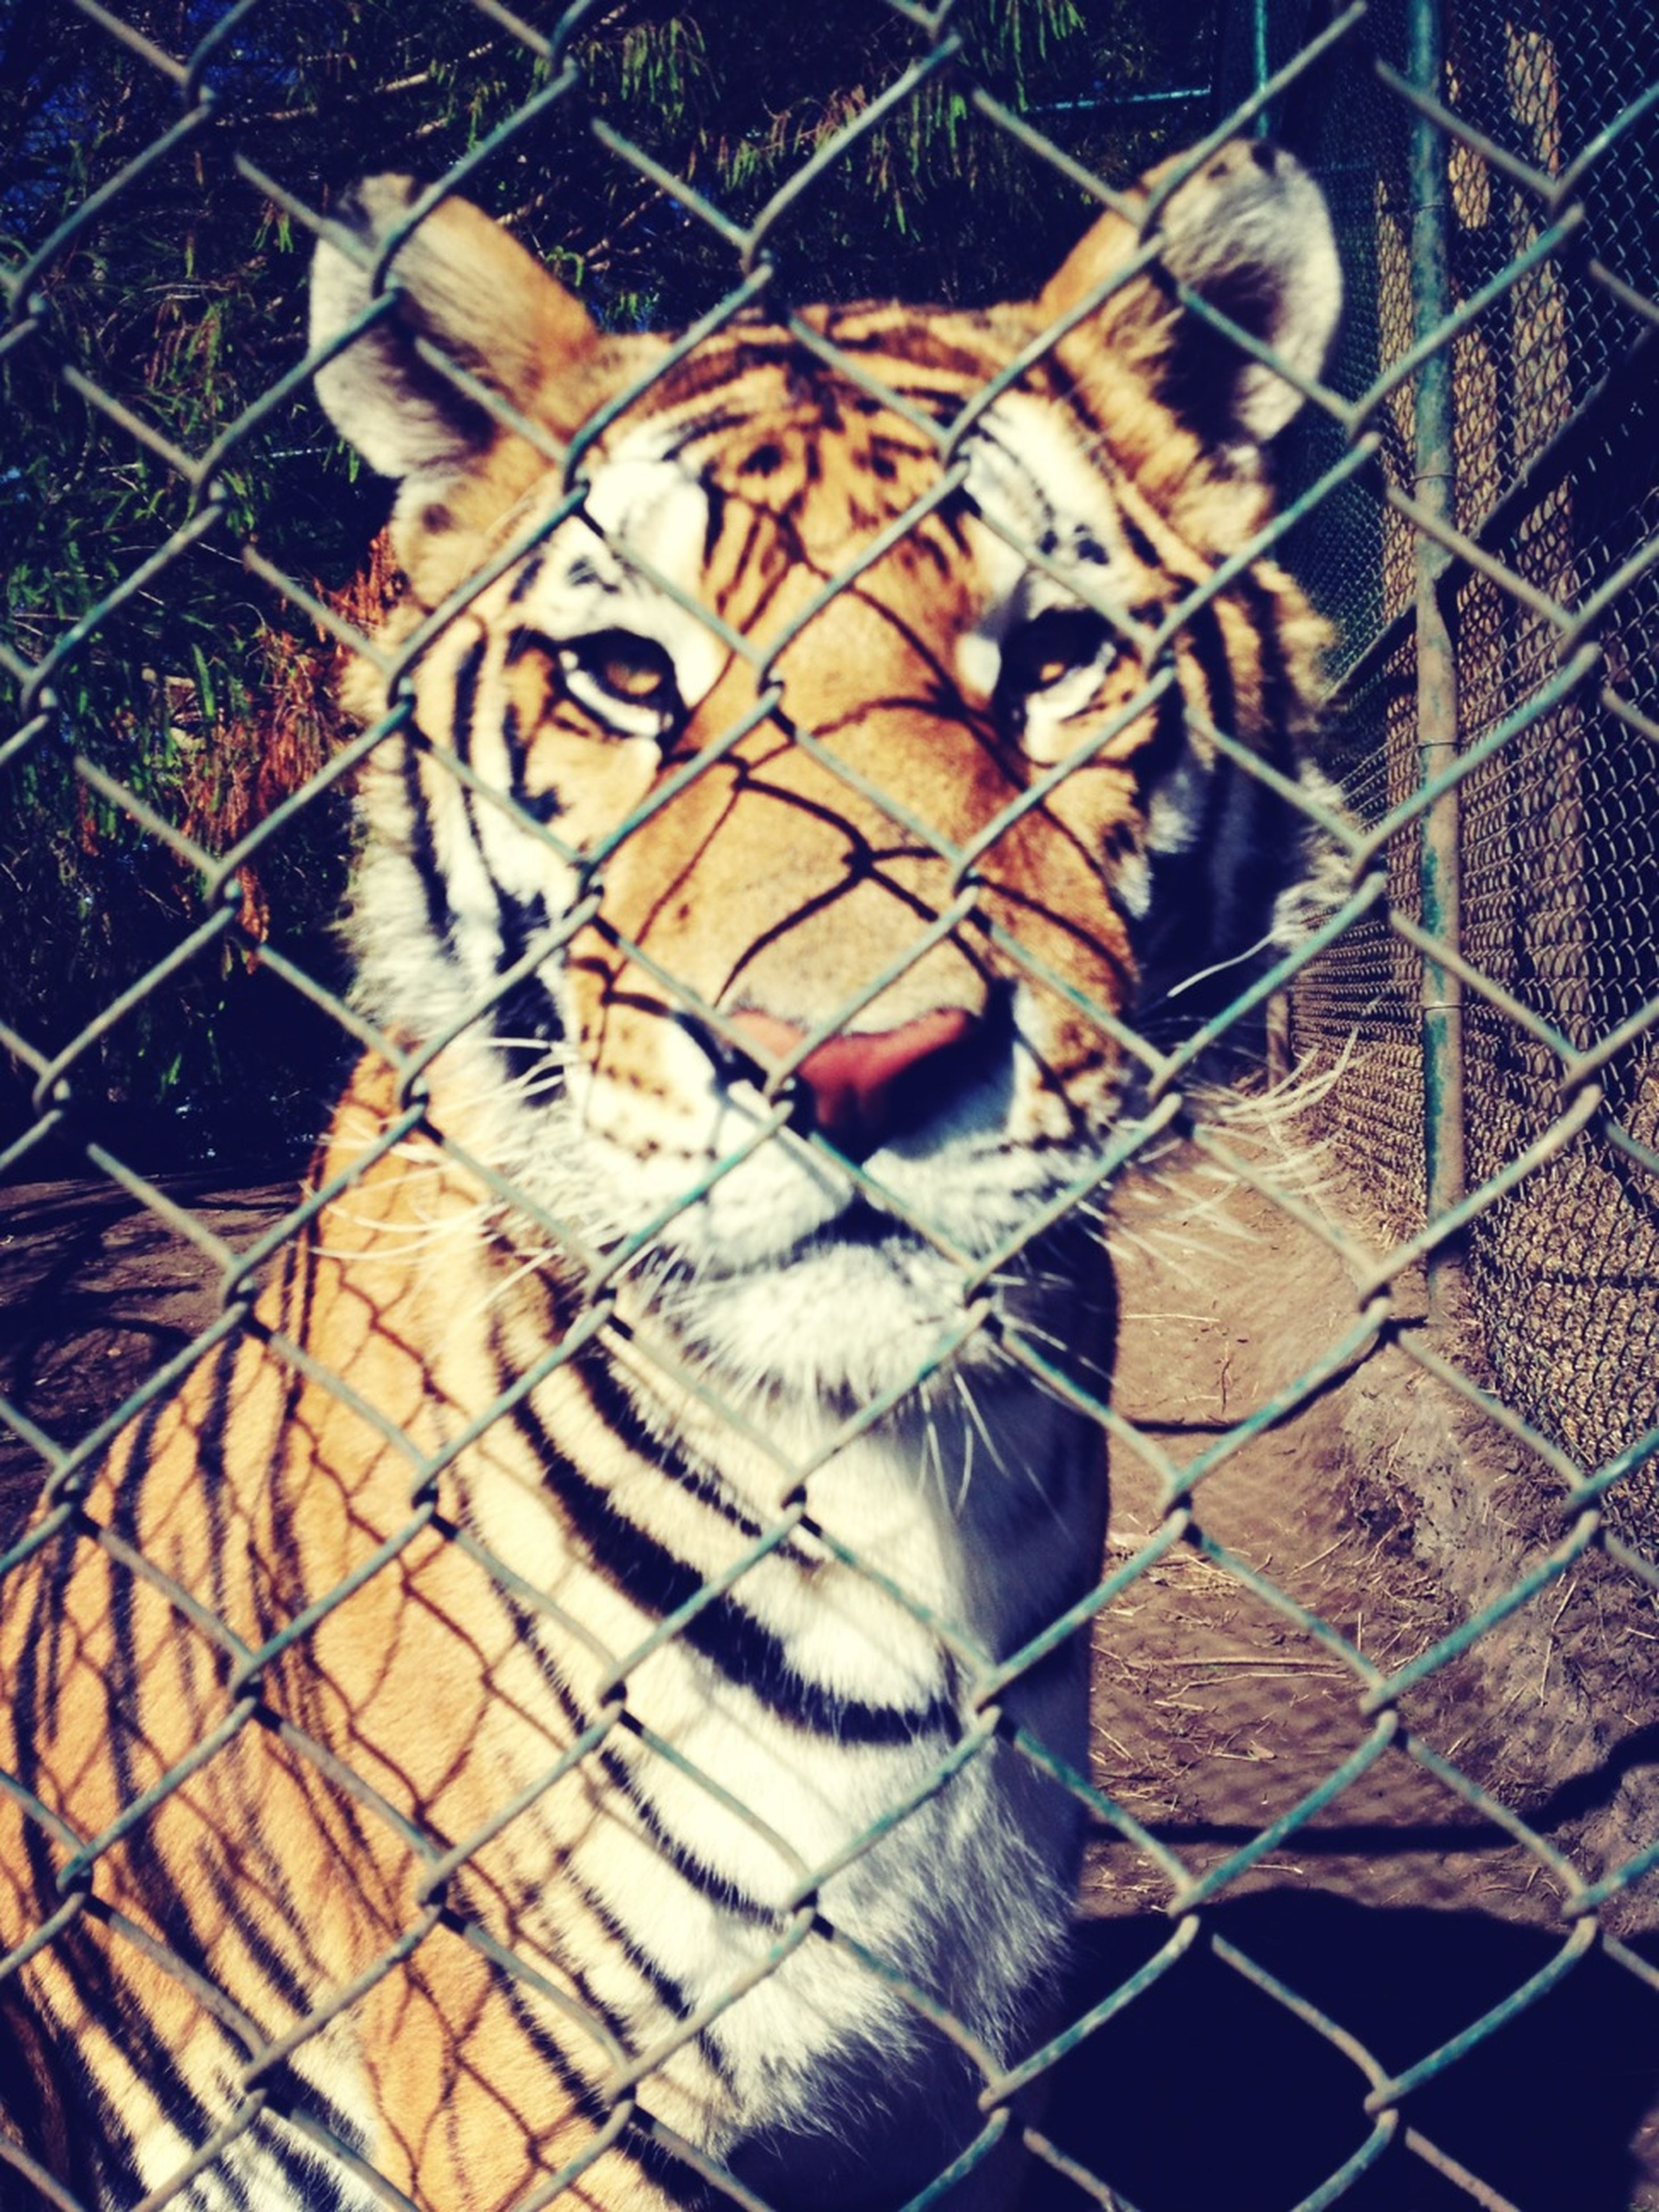 animal themes, one animal, mammal, domestic animals, pets, chainlink fence, fence, feline, domestic cat, animal markings, animals in captivity, portrait, animal head, cat, cage, zoo, close-up, no people, looking at camera, whisker